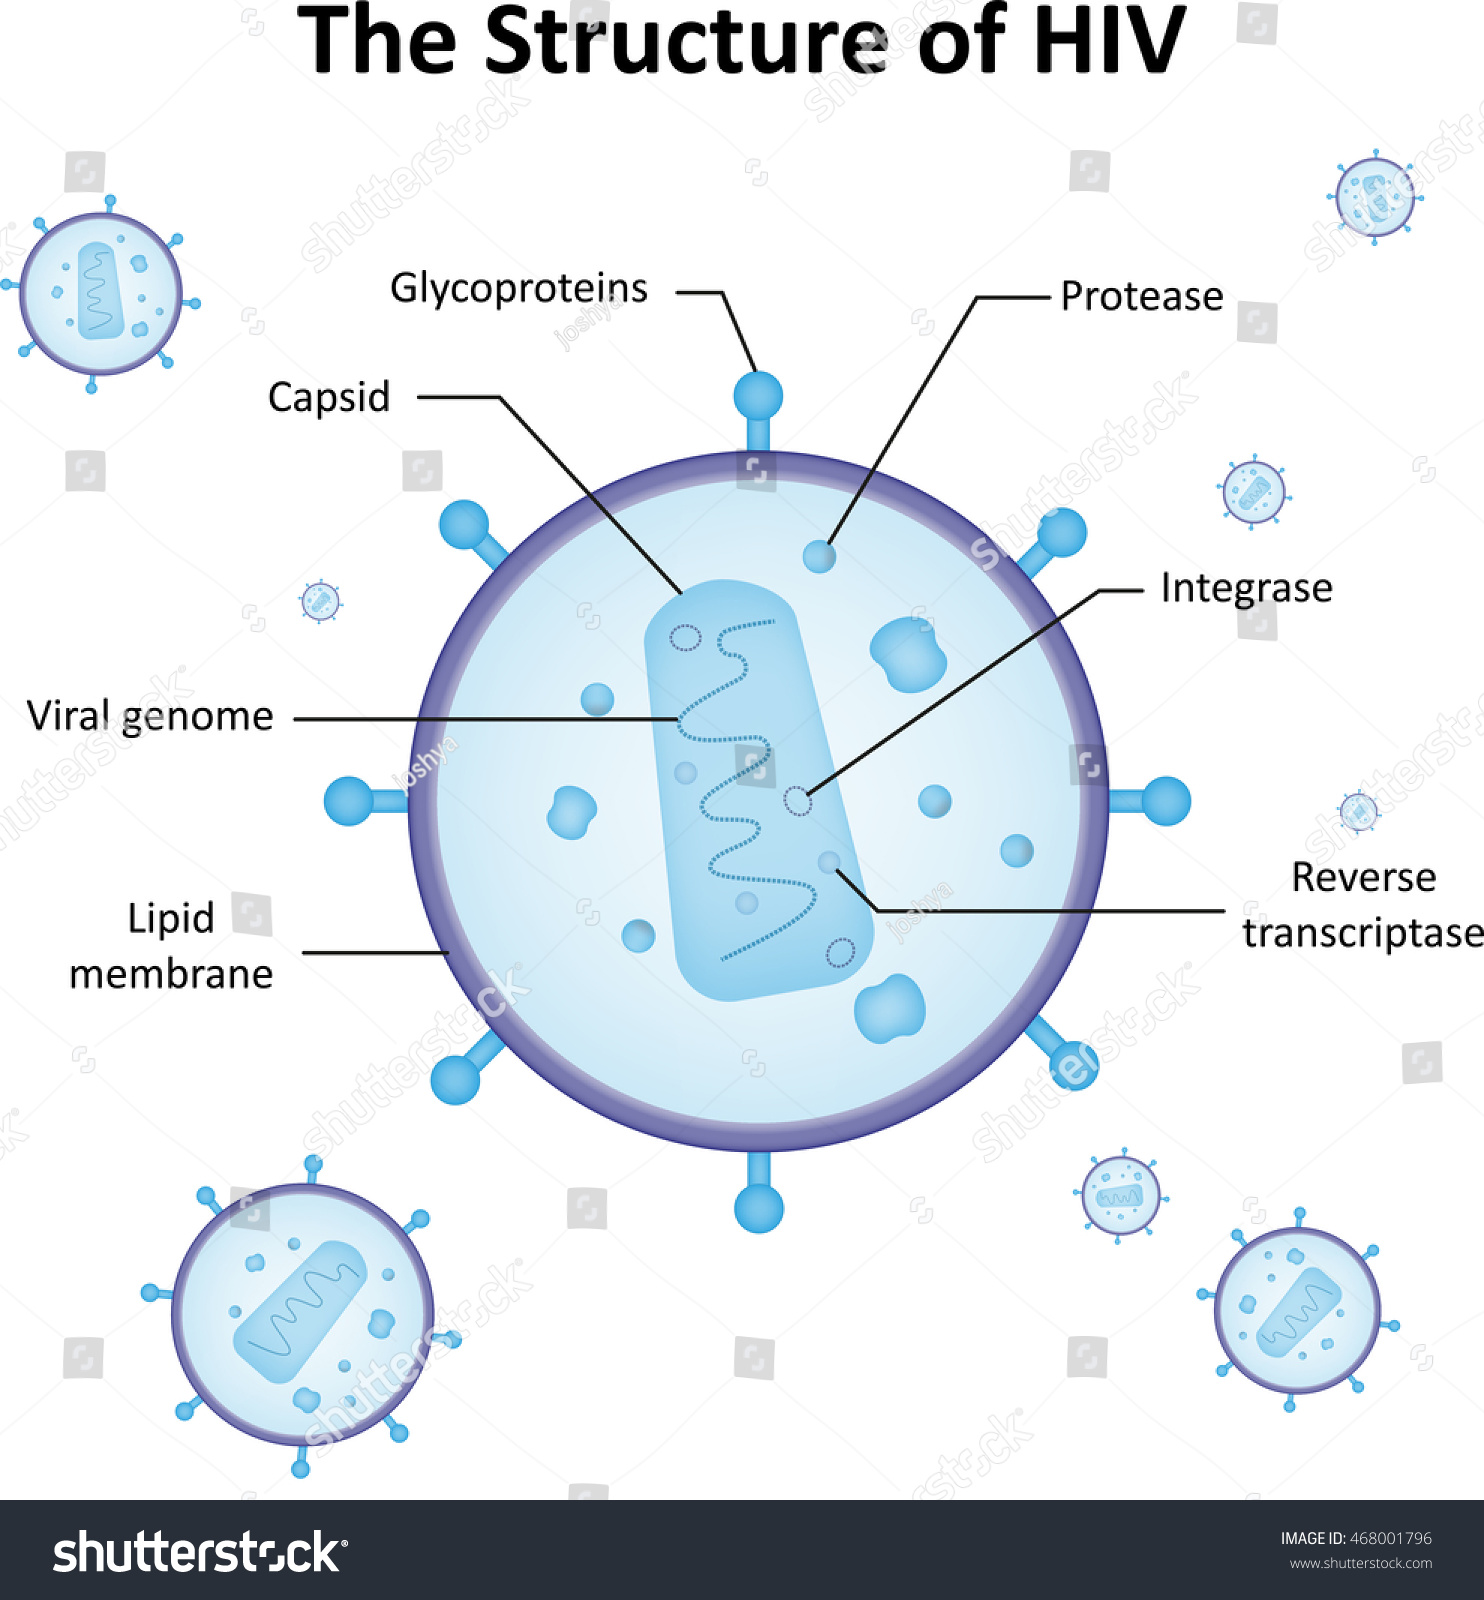 Structure Hiv Labeled Diagram Stock Vector 468001796 ...Hiv Virus Diagram Labeled